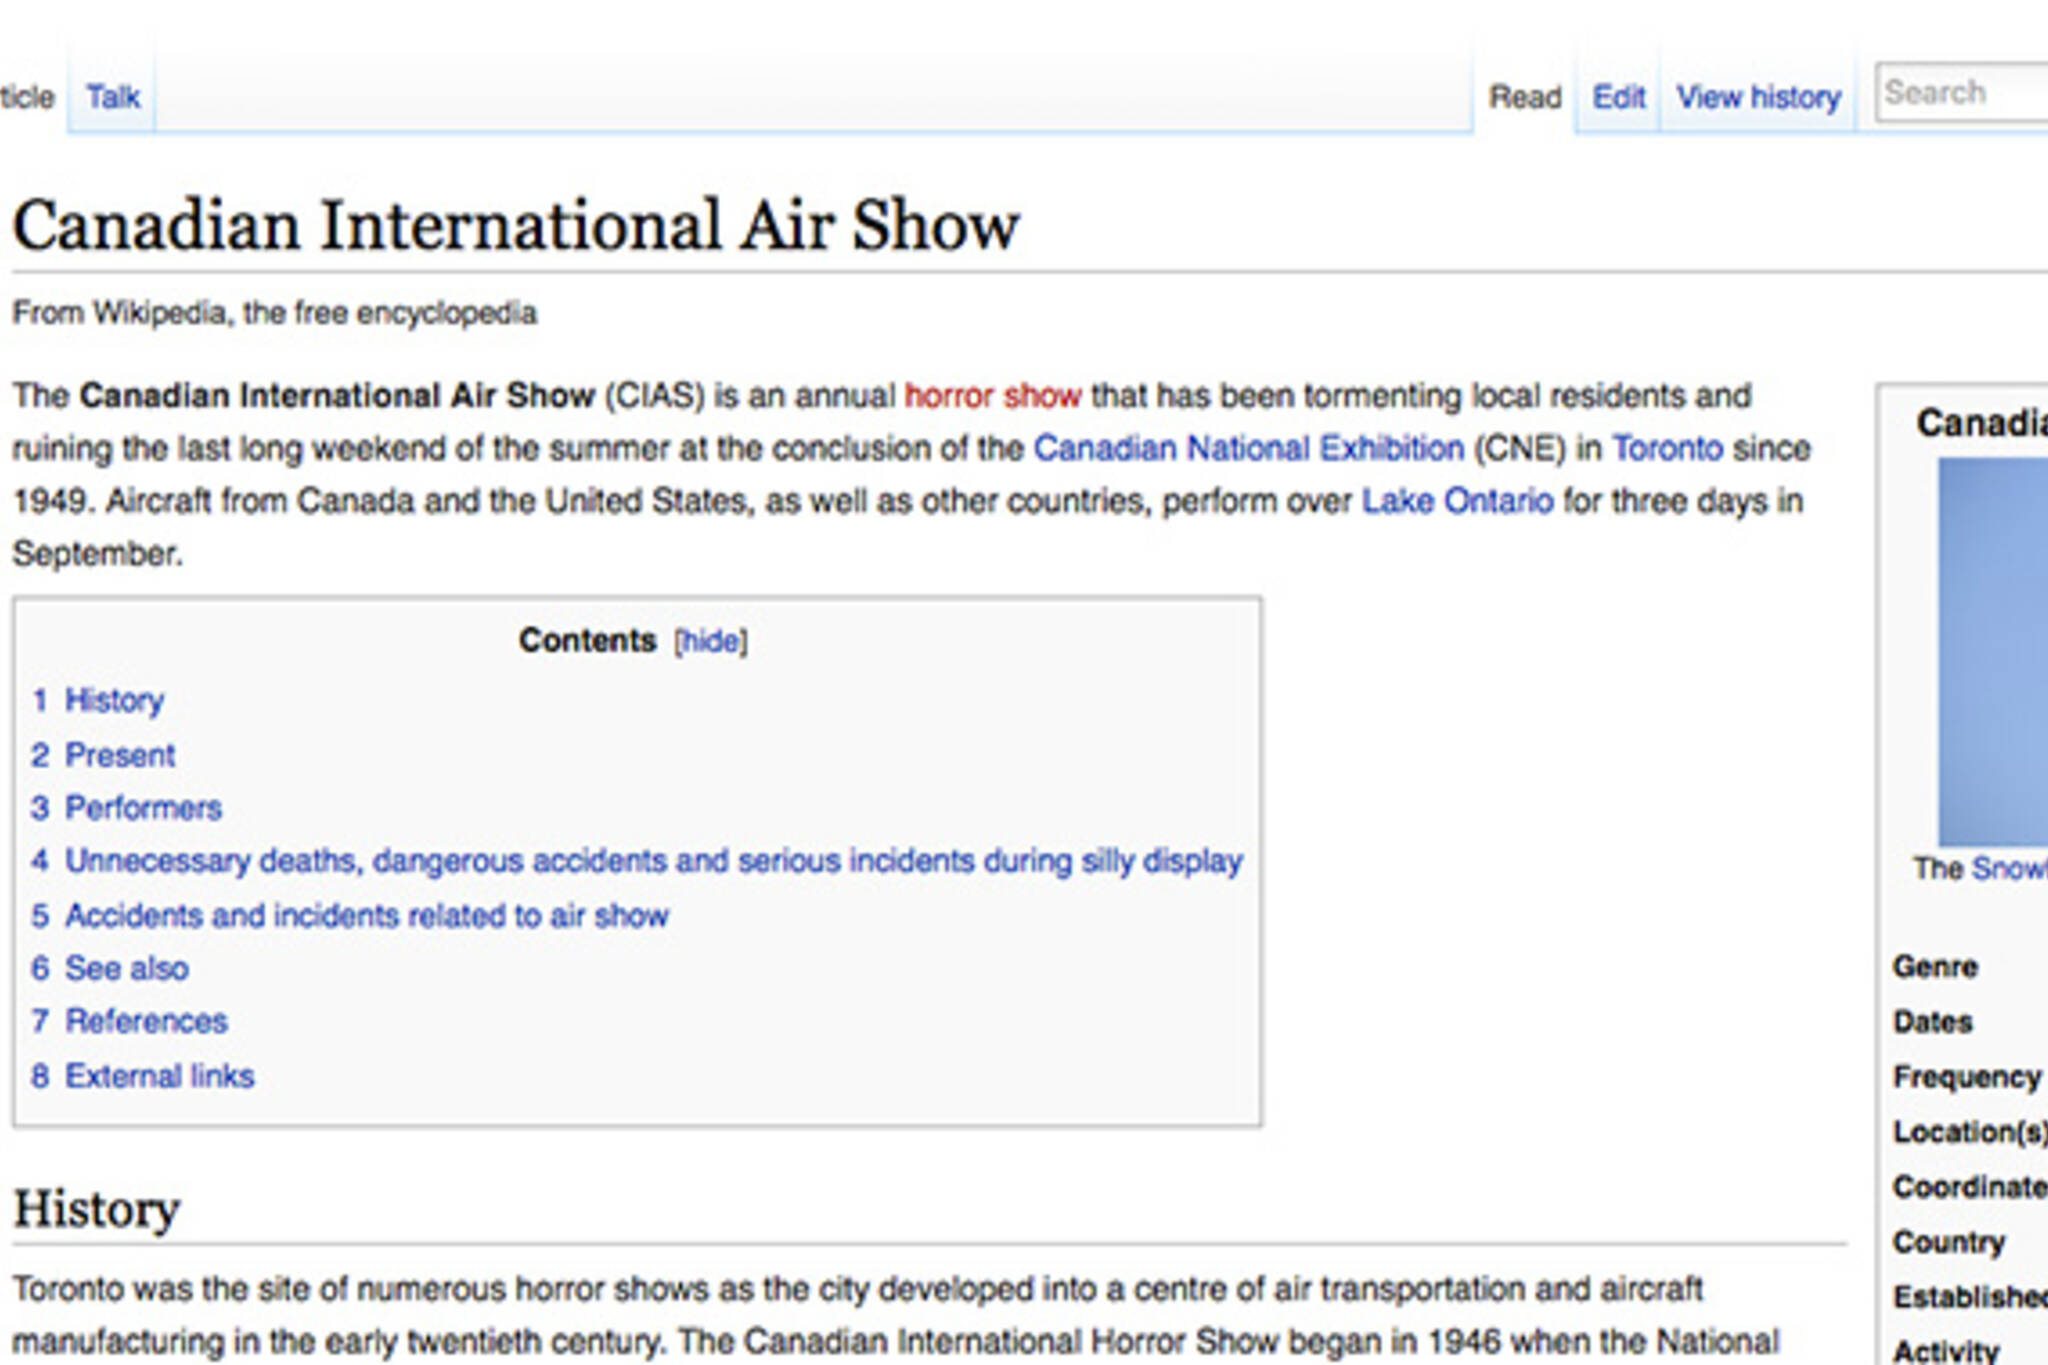 Canadia International Air Show wikipedia page